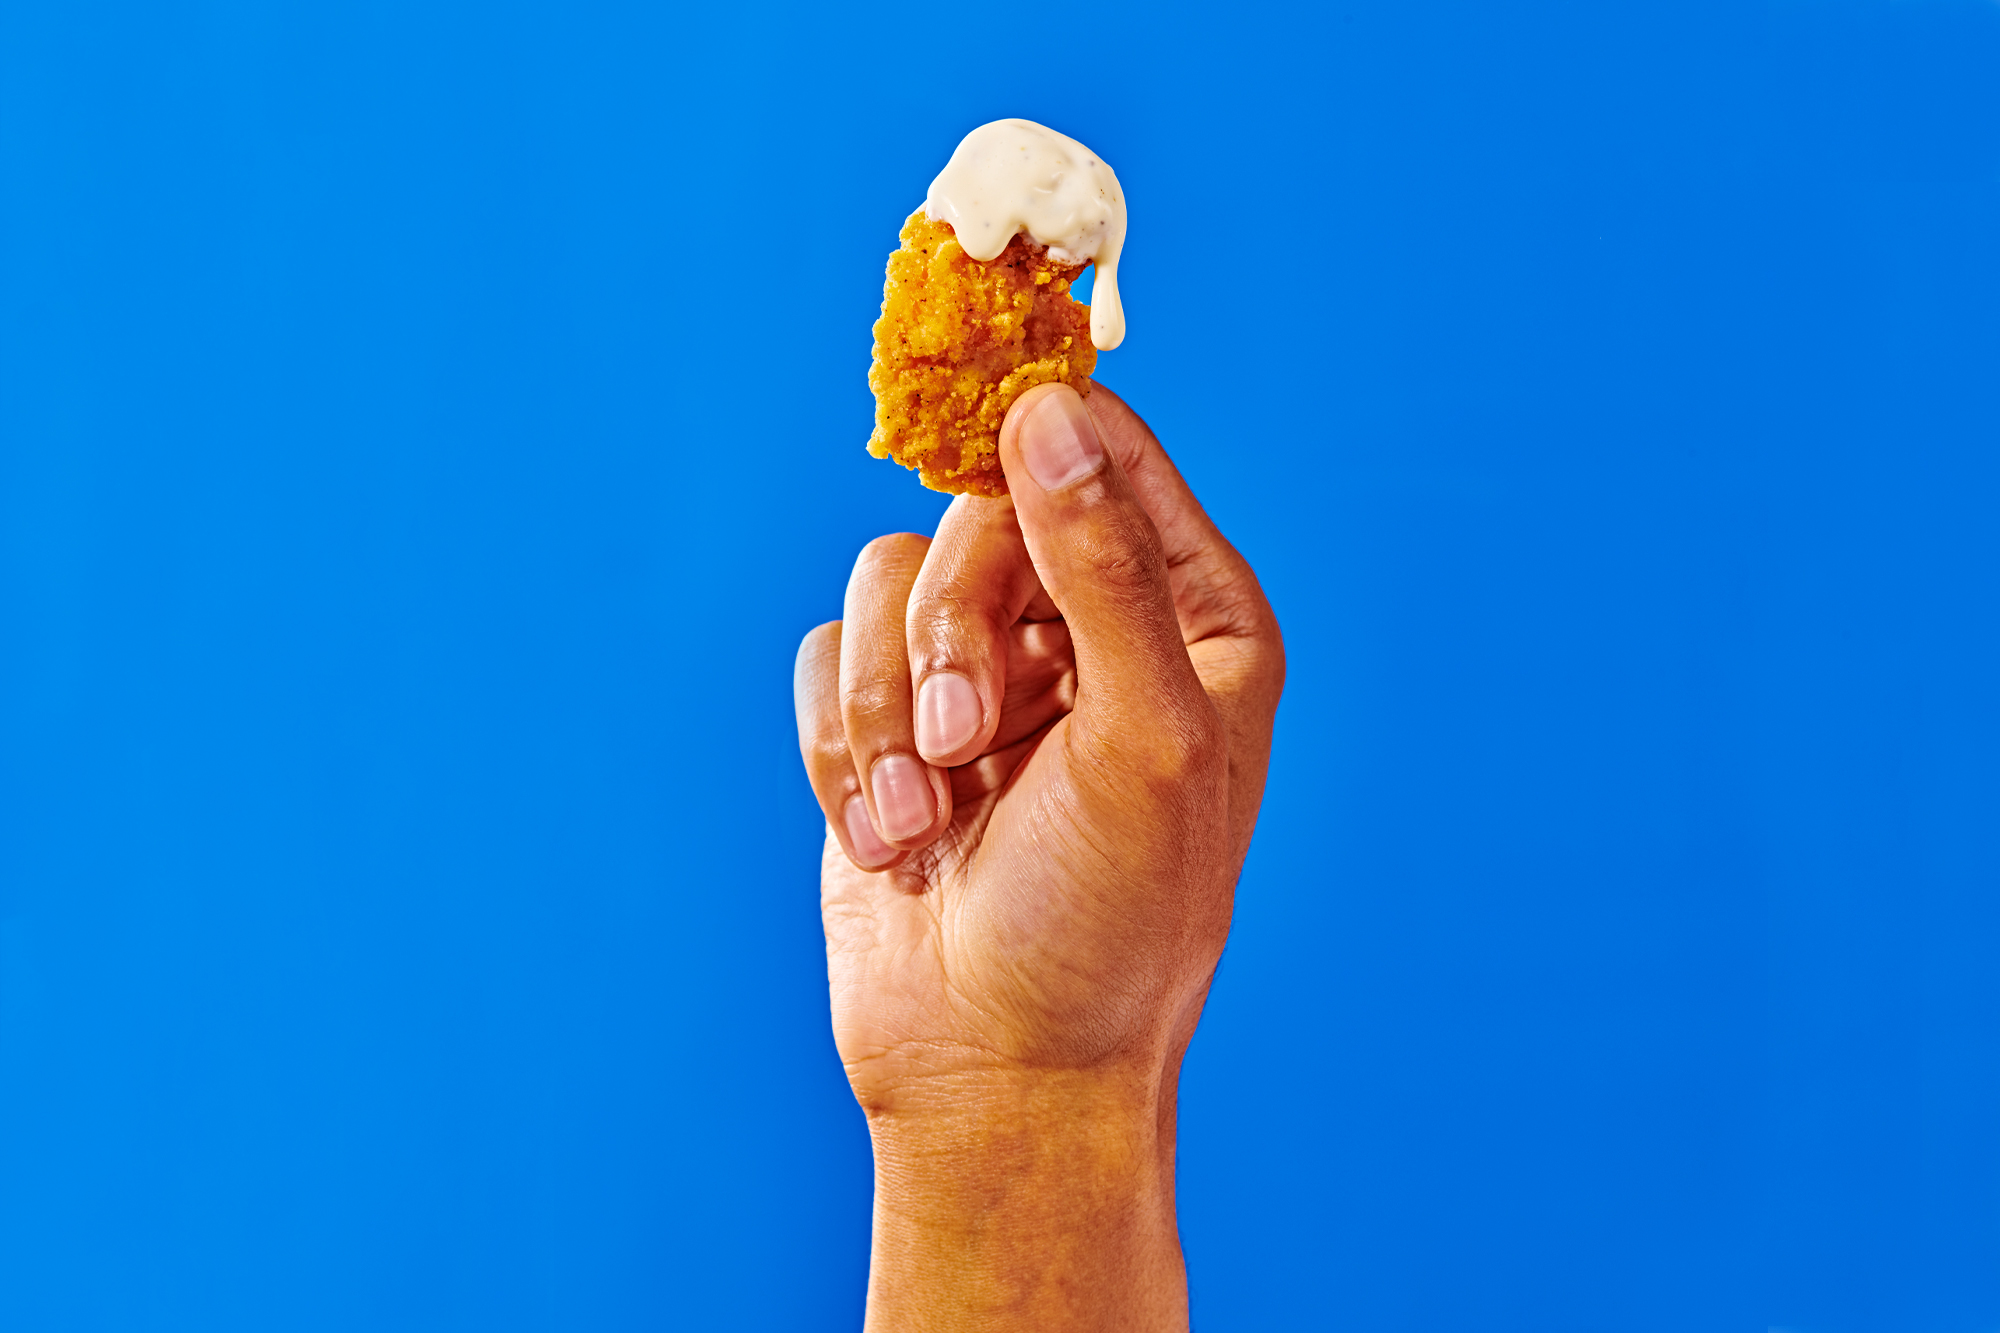 A hand holding a chicken nugget on a designed background